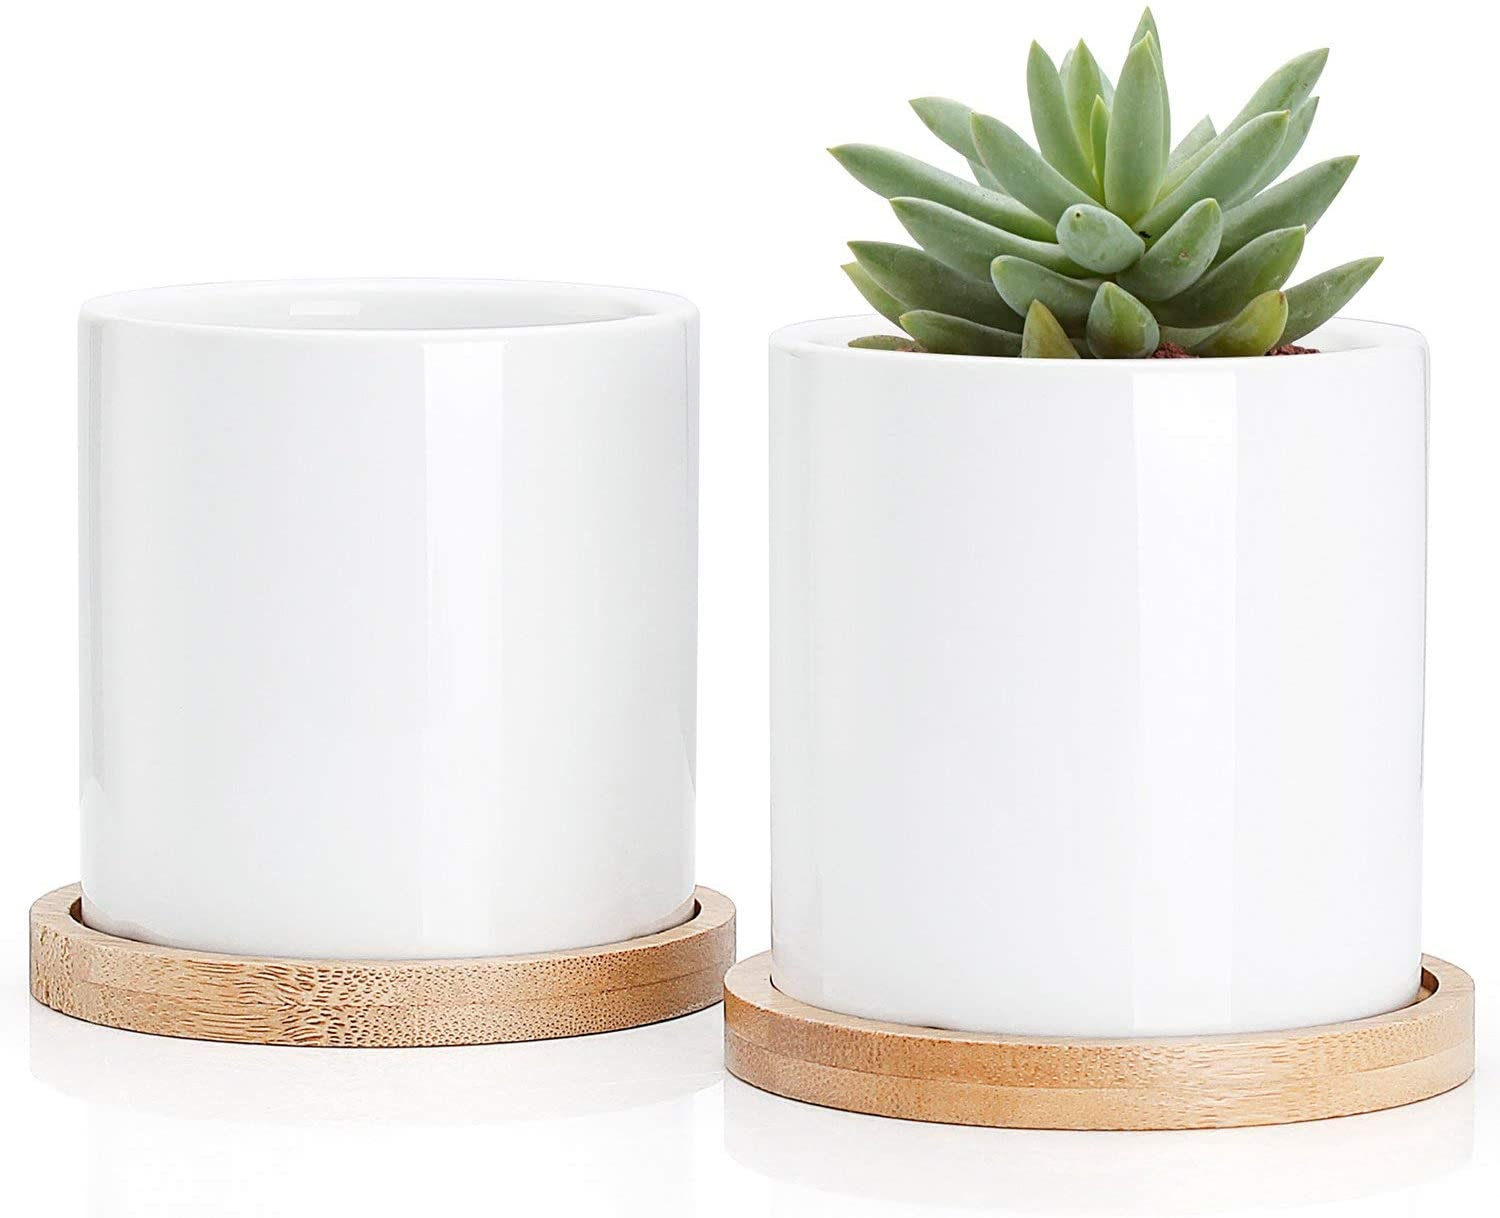 Greenaholics Succulent Plant Pots - 3 Inch Ceramic Cylindrical Containers, Small Cactus Planters, Flower Pots with Drainage Hole, Bamboo Tray, Set of 2, White (Renewed)